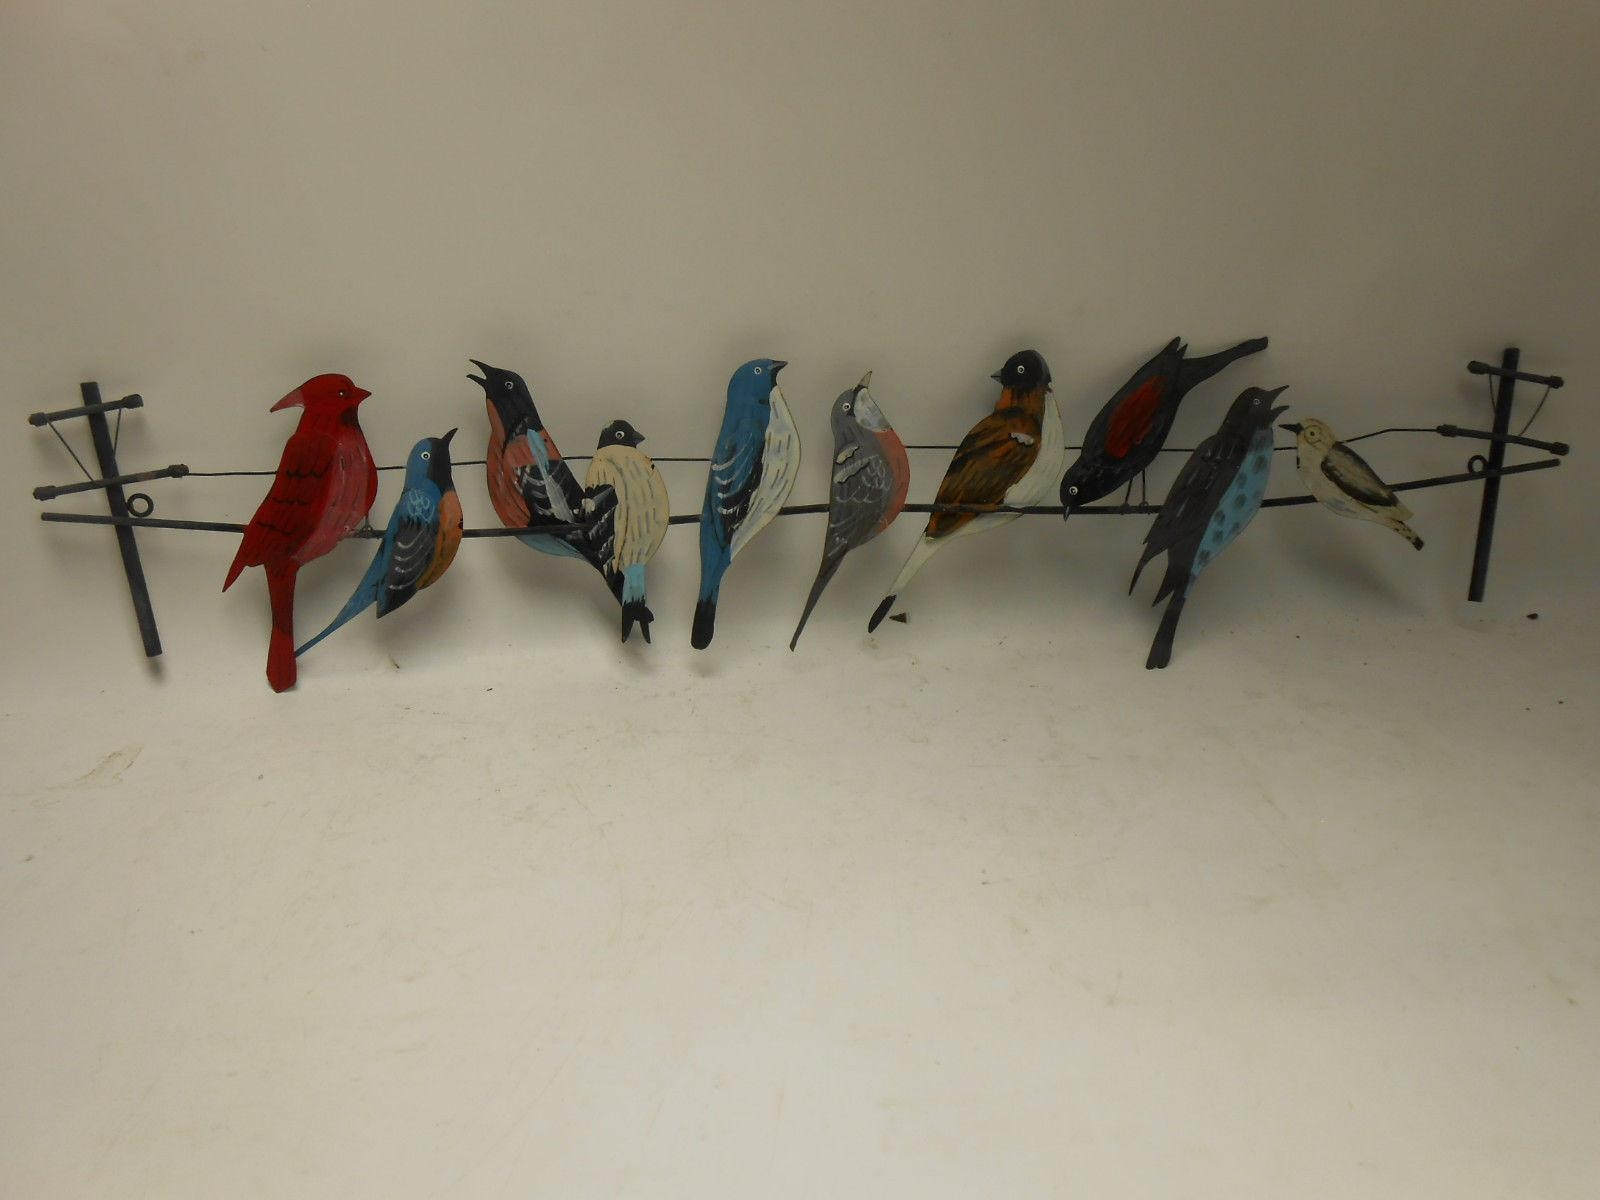 Vintage Handmade Hand Painted Birds On A Wire, Metal Wall Art Regarding Birds On A Wire Wall Art (Image 18 of 20)